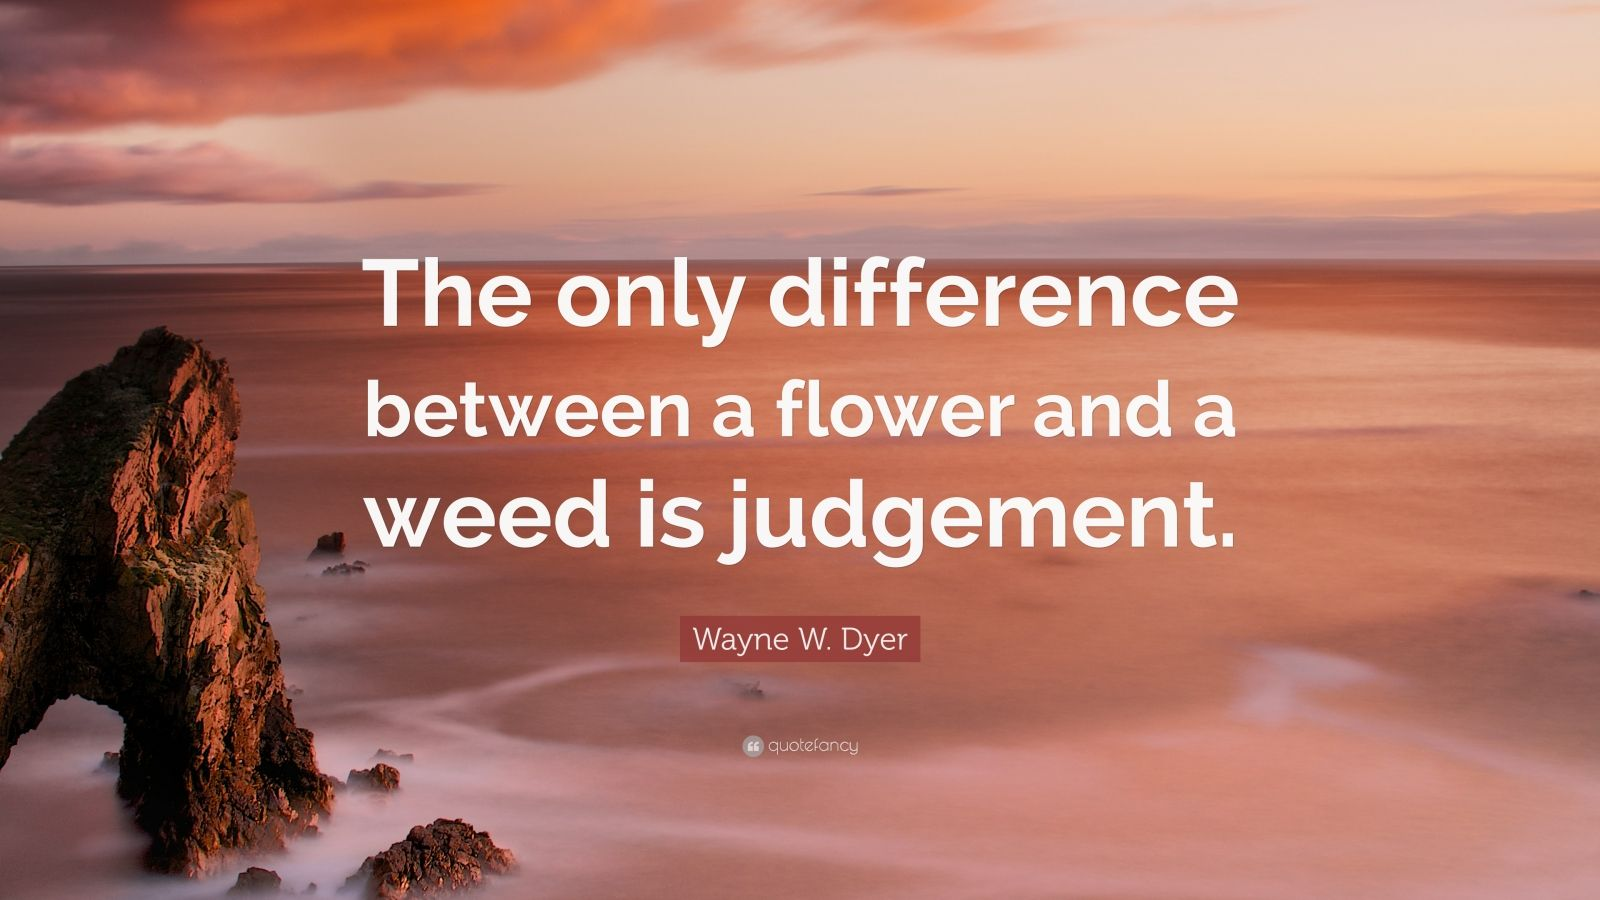 """Wayne W. Dyer Quote: """"The only difference between a flower and a weed is judgement."""""""